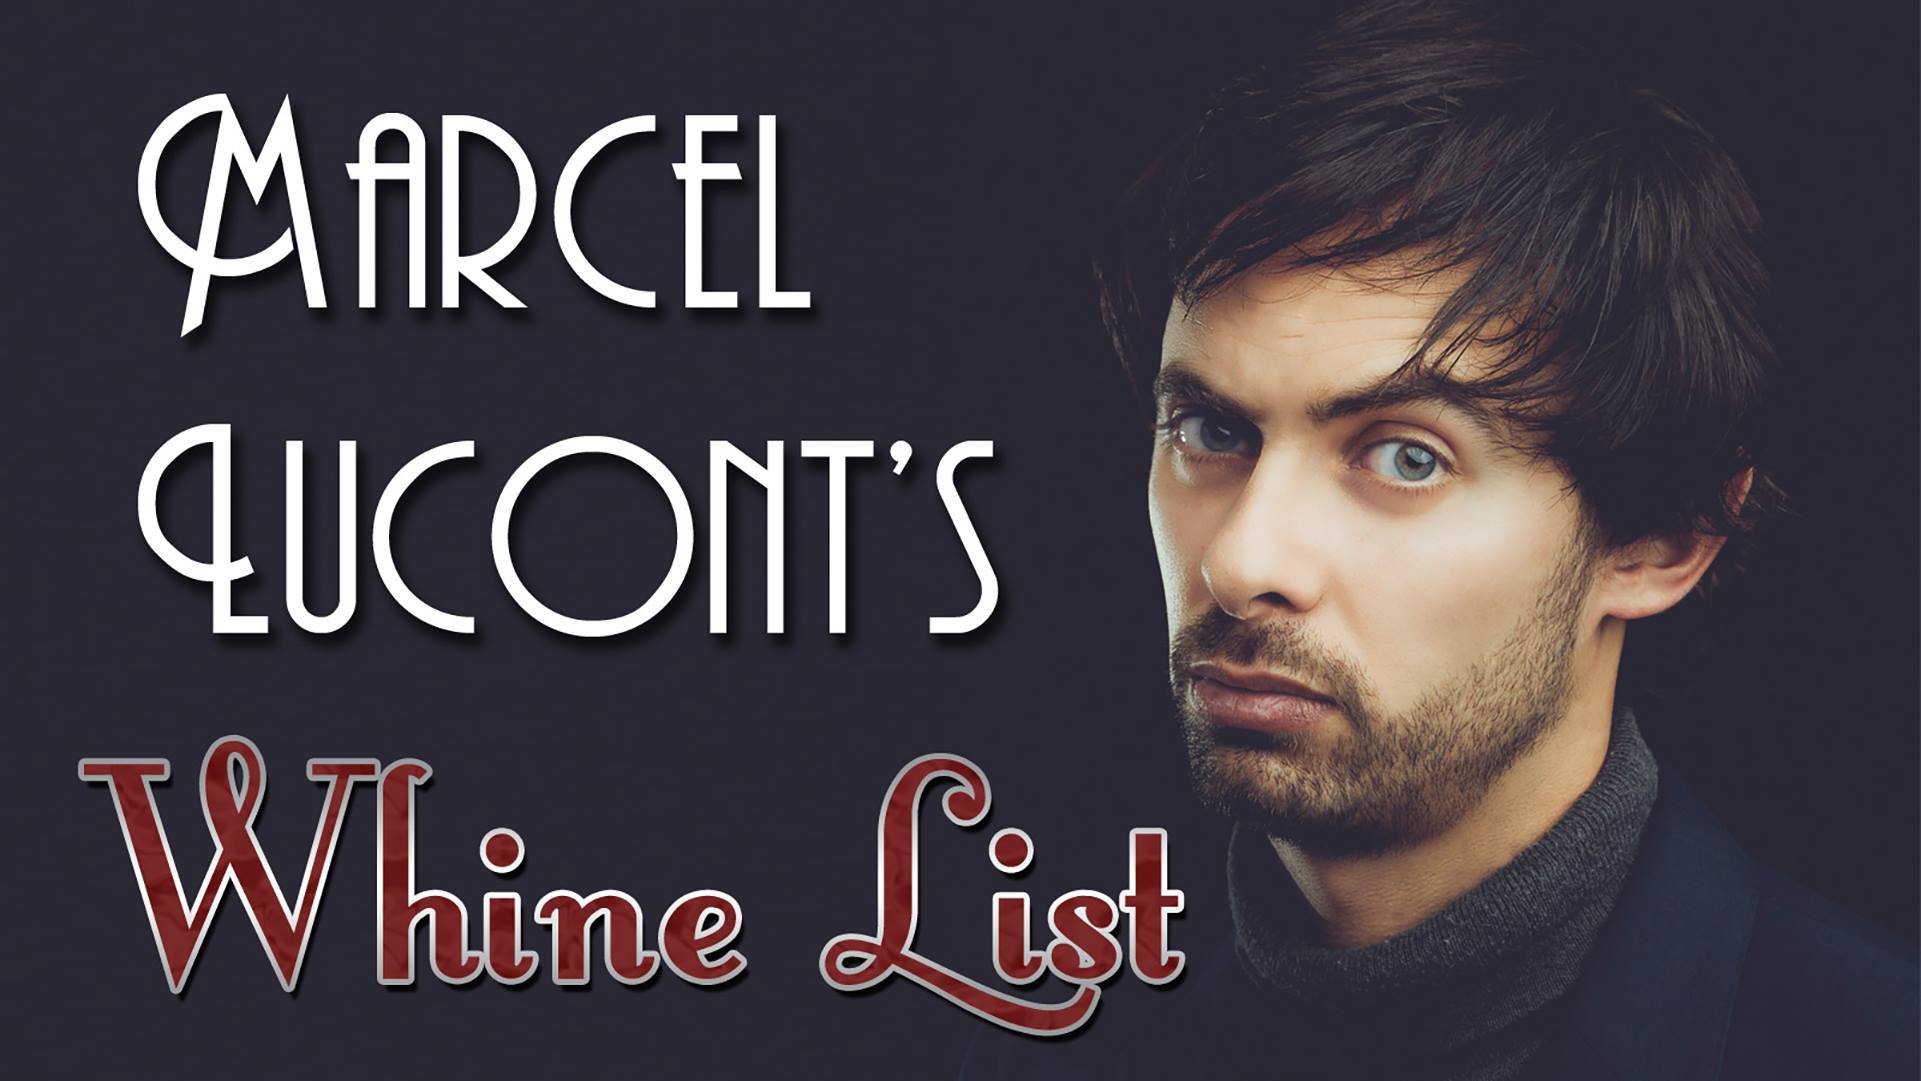 Marcel Lucont – Whine List in Darwin March 23rd